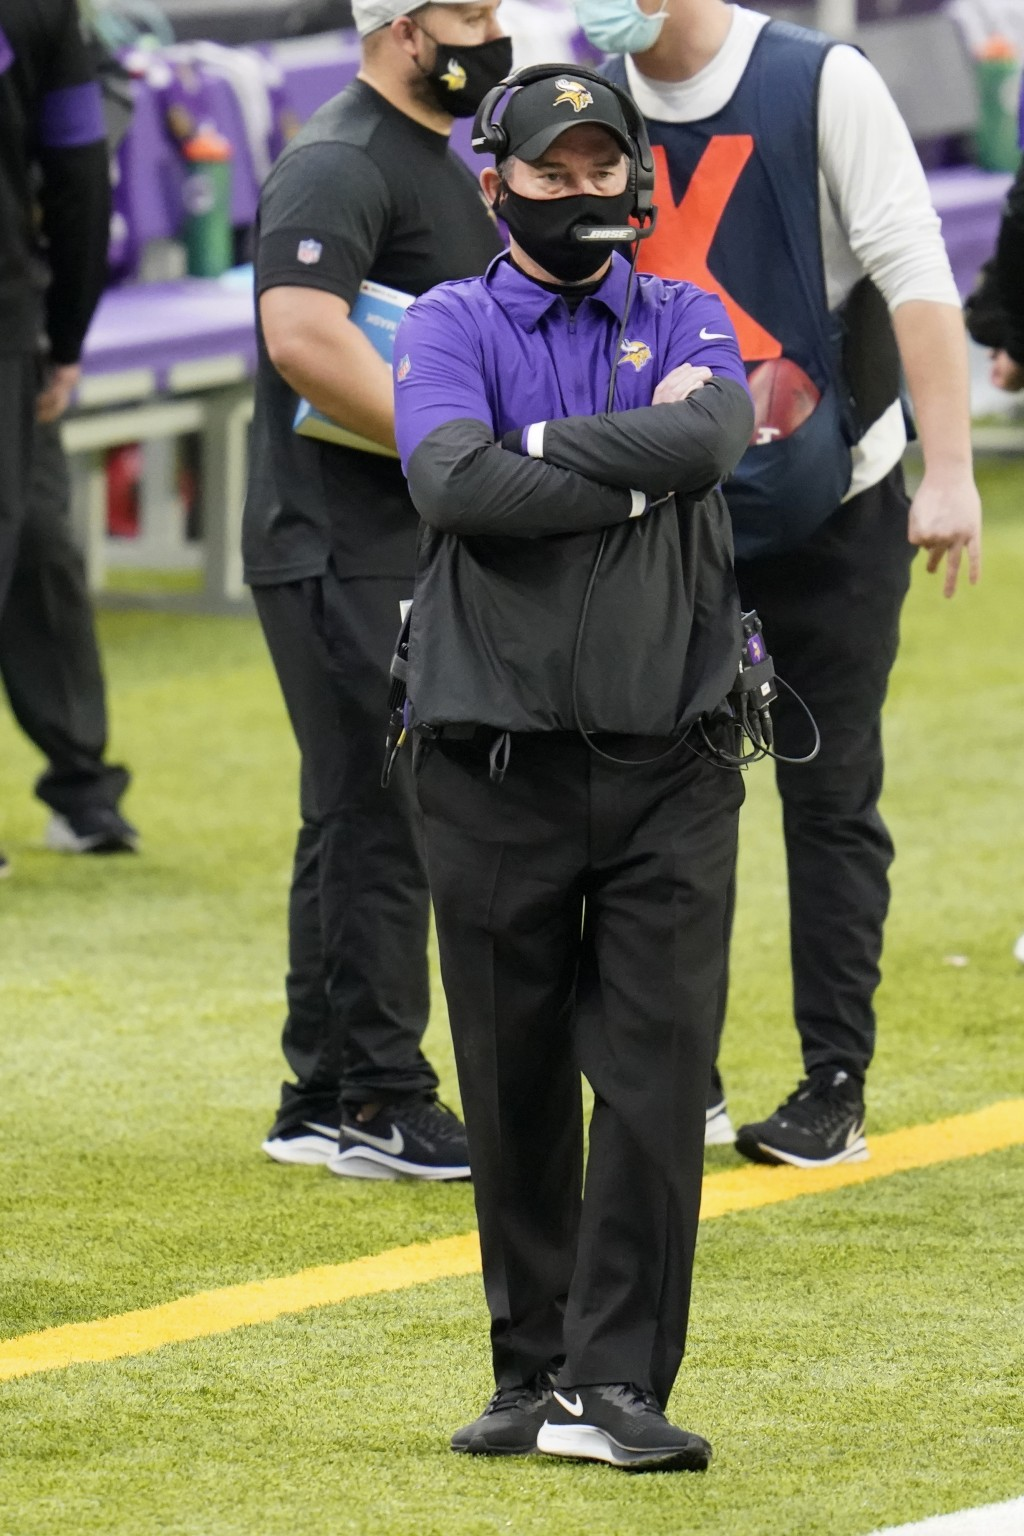 Minnesota Vikings head coach Mike Zimmer stands on the sideline during the first half of an NFL football game against the Jacksonville Jaguars, Sunday...